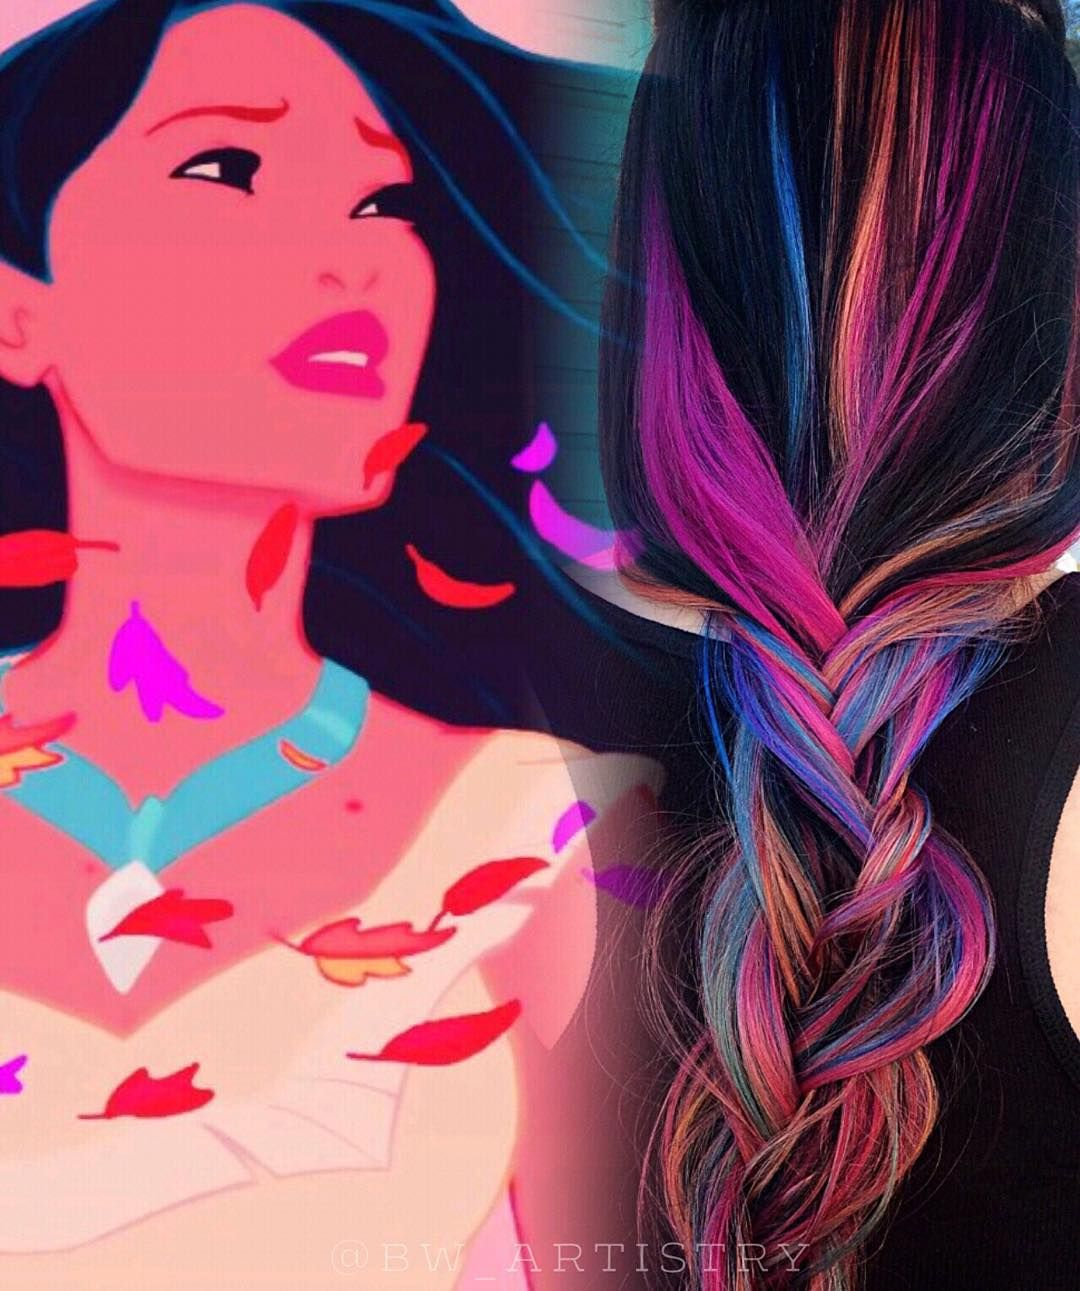 http://hairaddiction.collectivepress.com/5-disney-inspired-hair-styles-that-will-make-you-squeal/?s=hairaddiction_xpromo&eid=3506_s